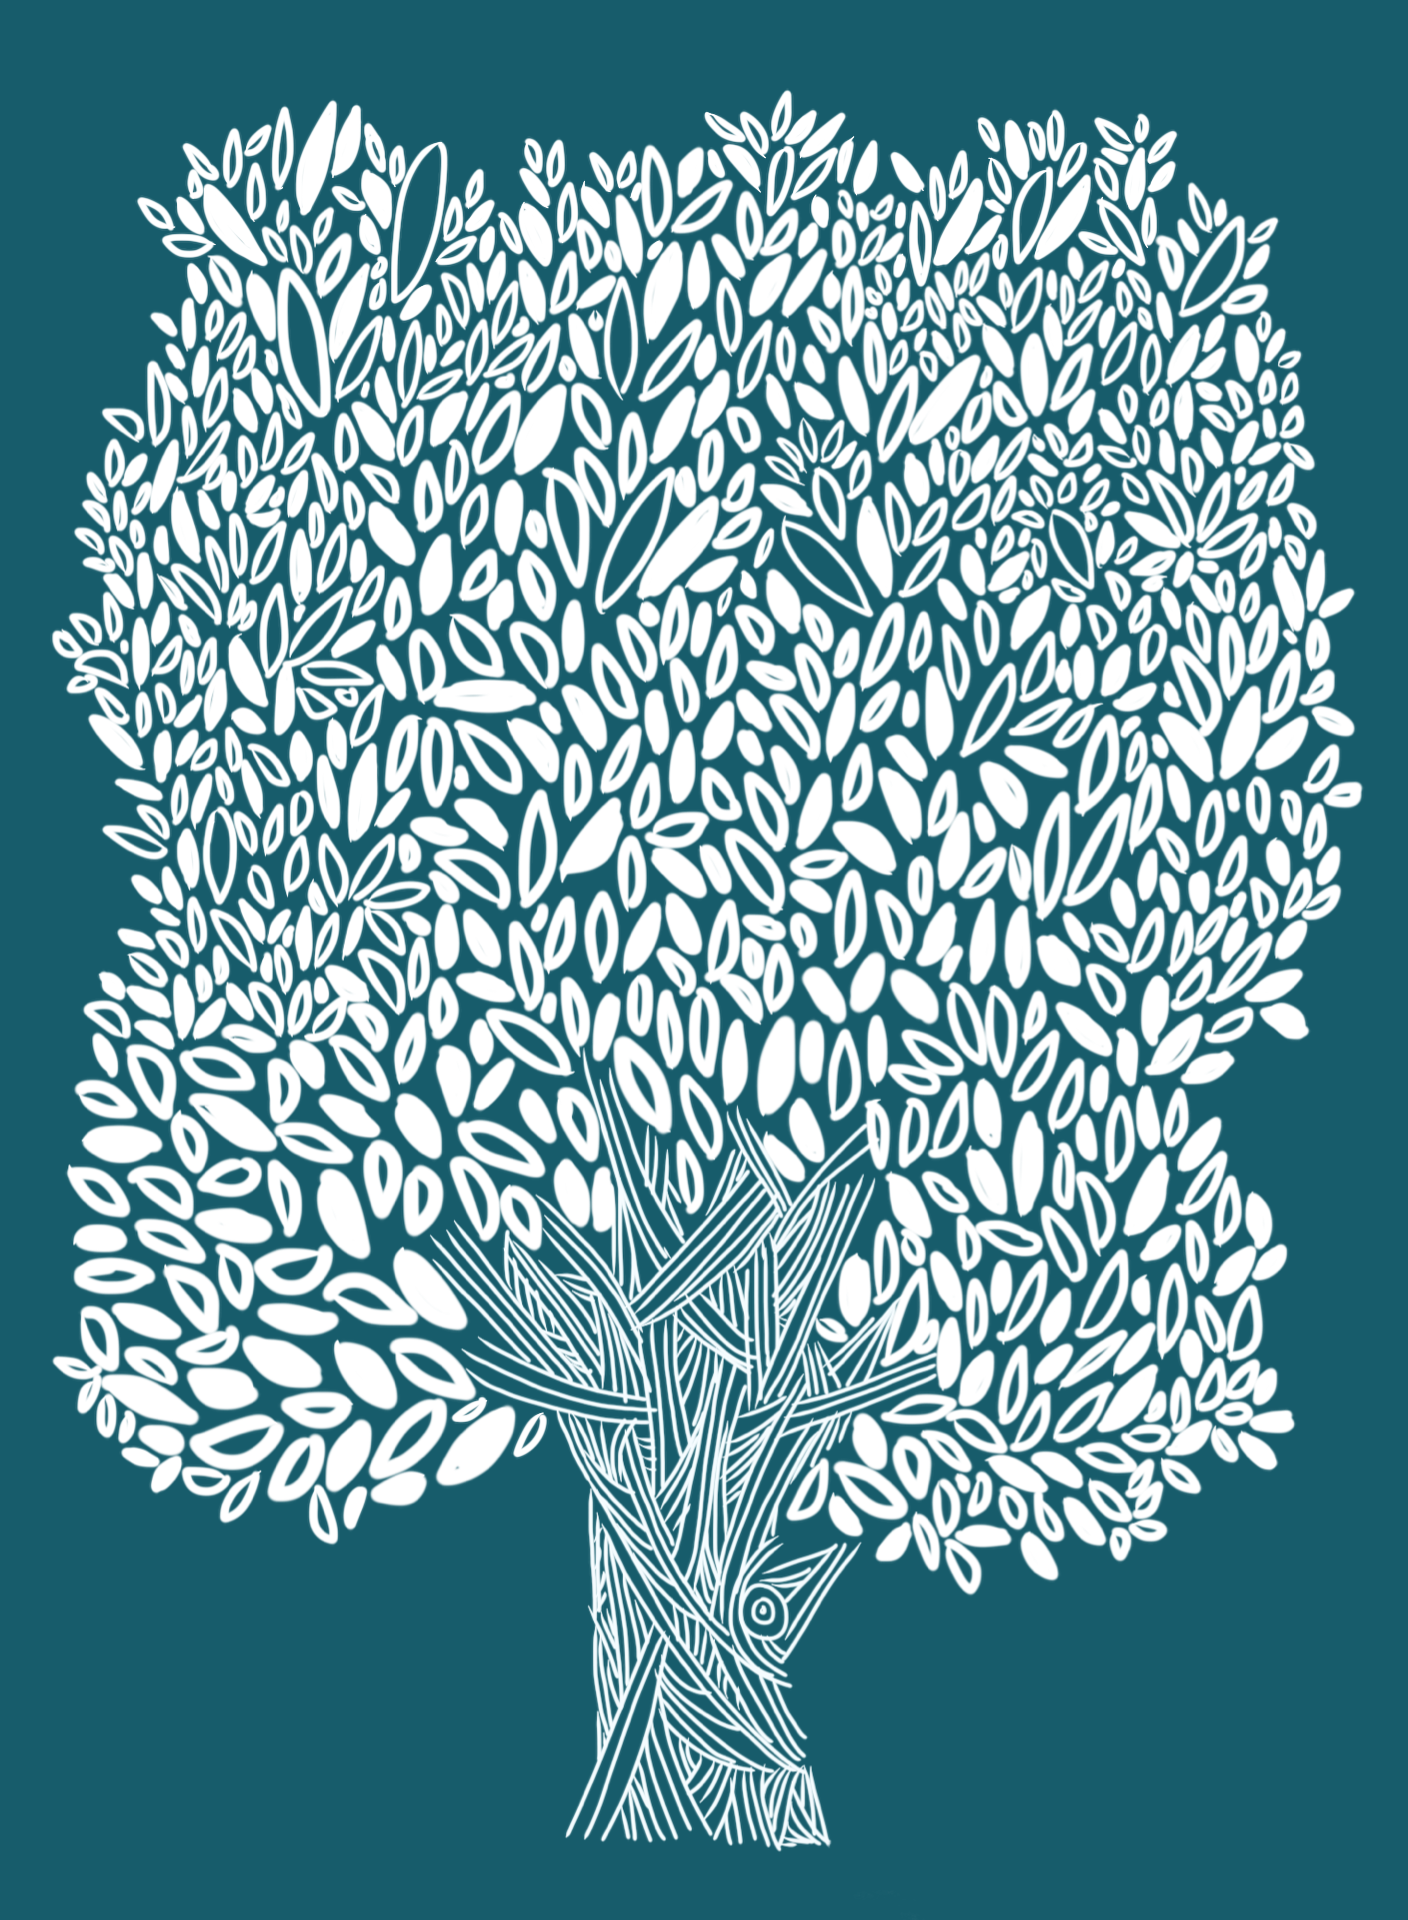 tree drawing white on dark teal